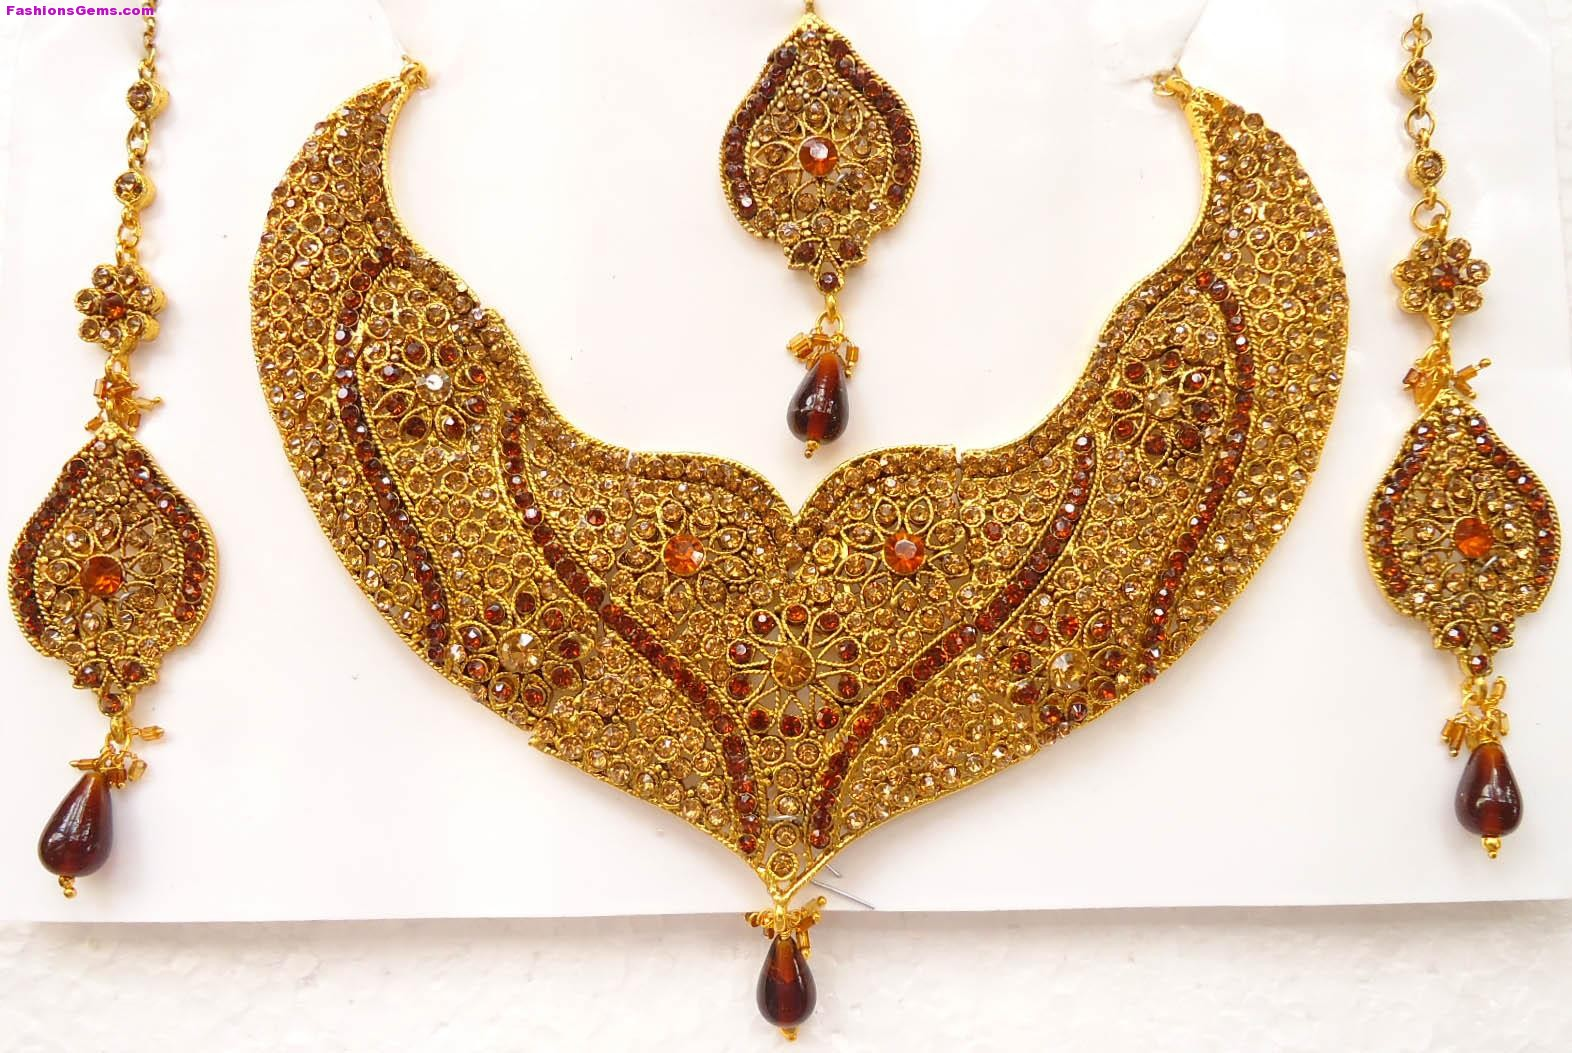 gold jewellery in Dubai - Image Wallpapers